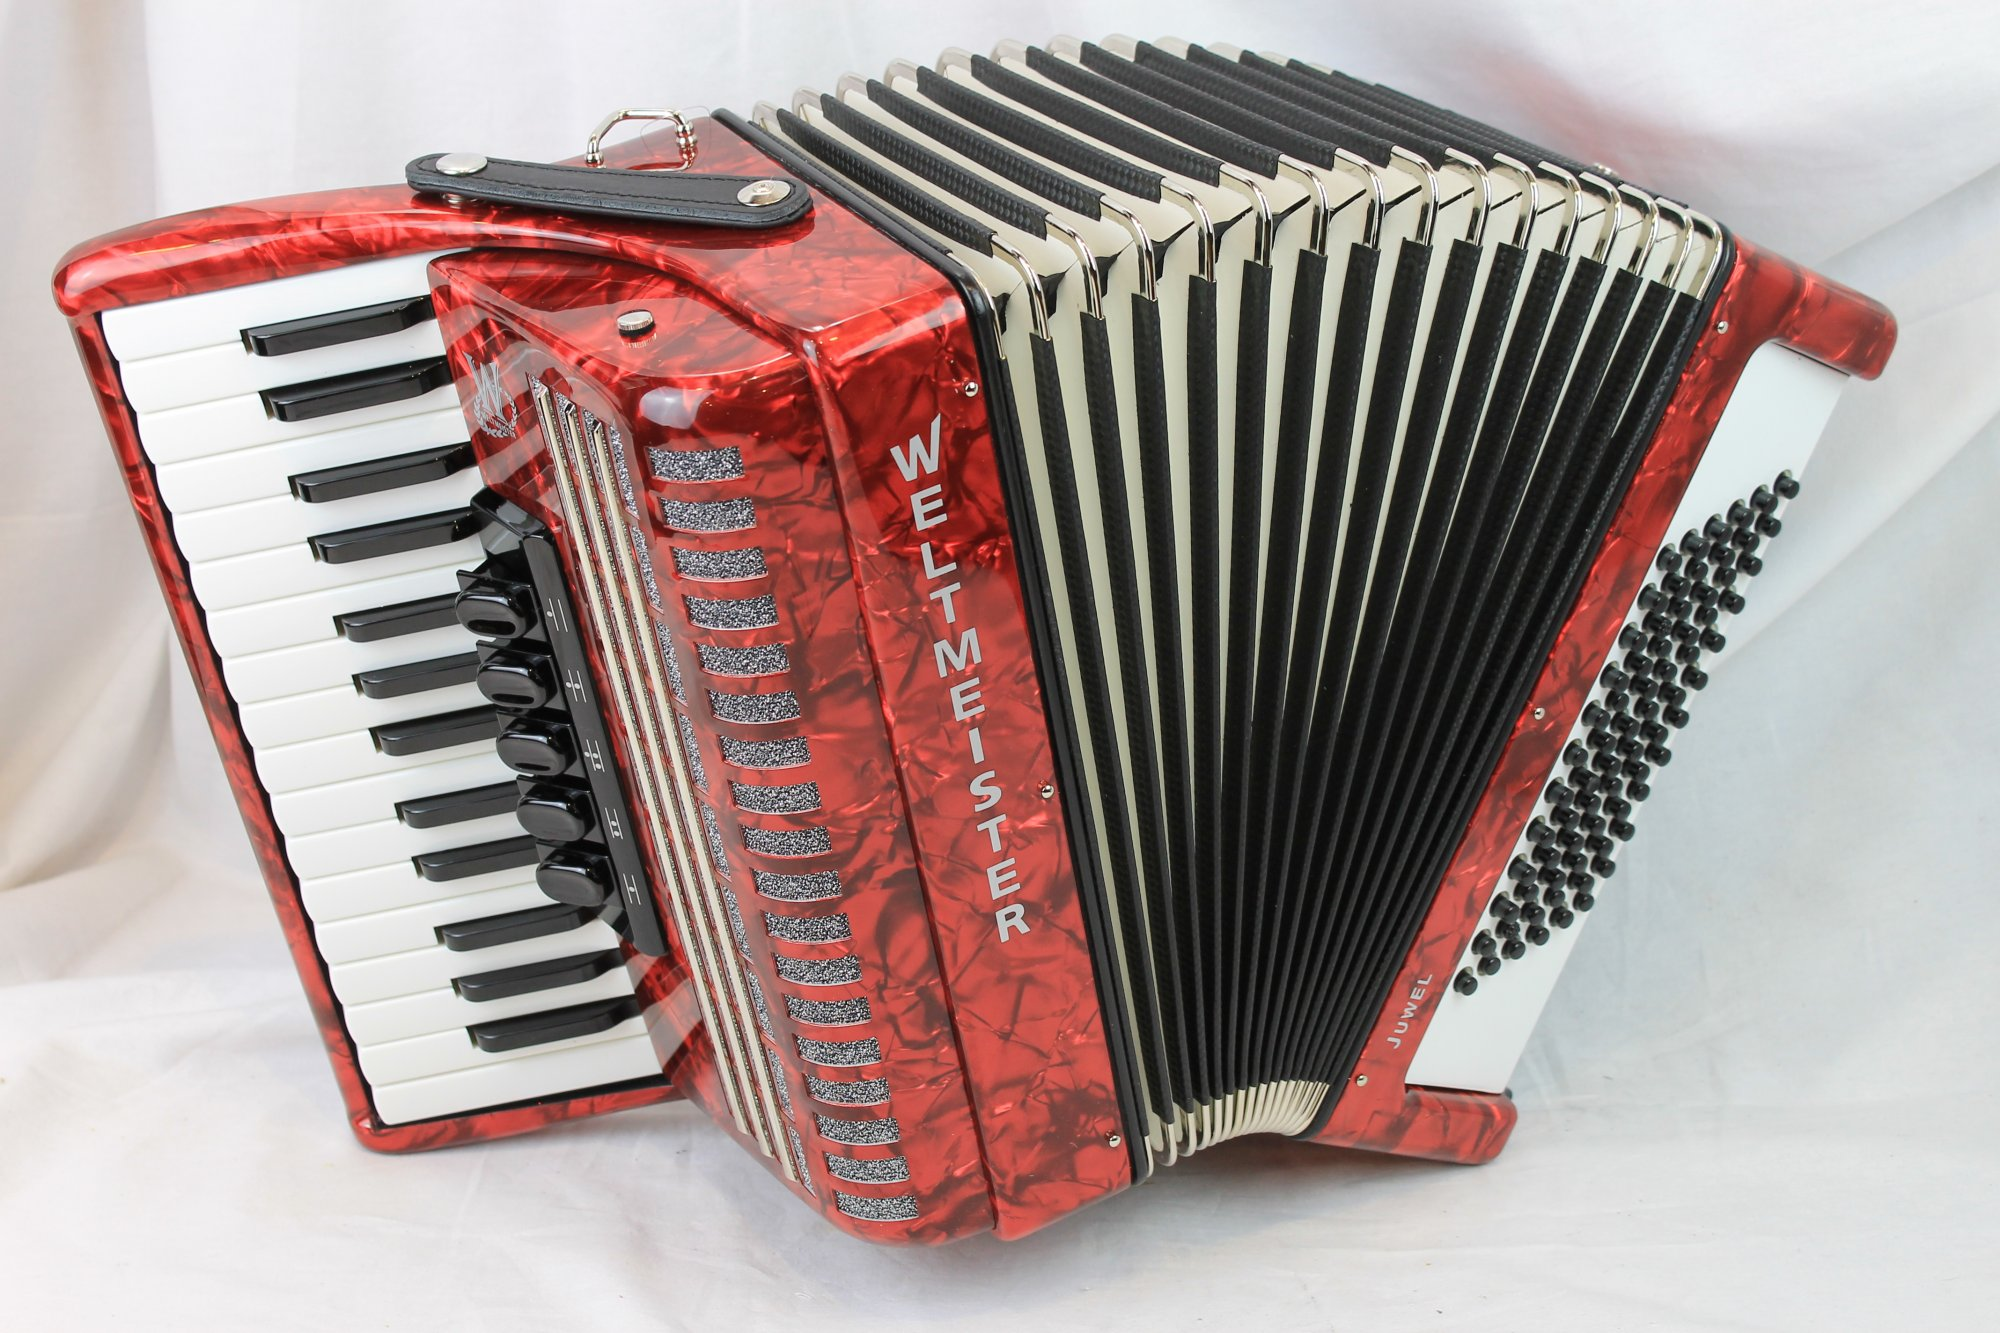 NEW Red Weltmeister Juwel Piano Accordion LMM 30 72